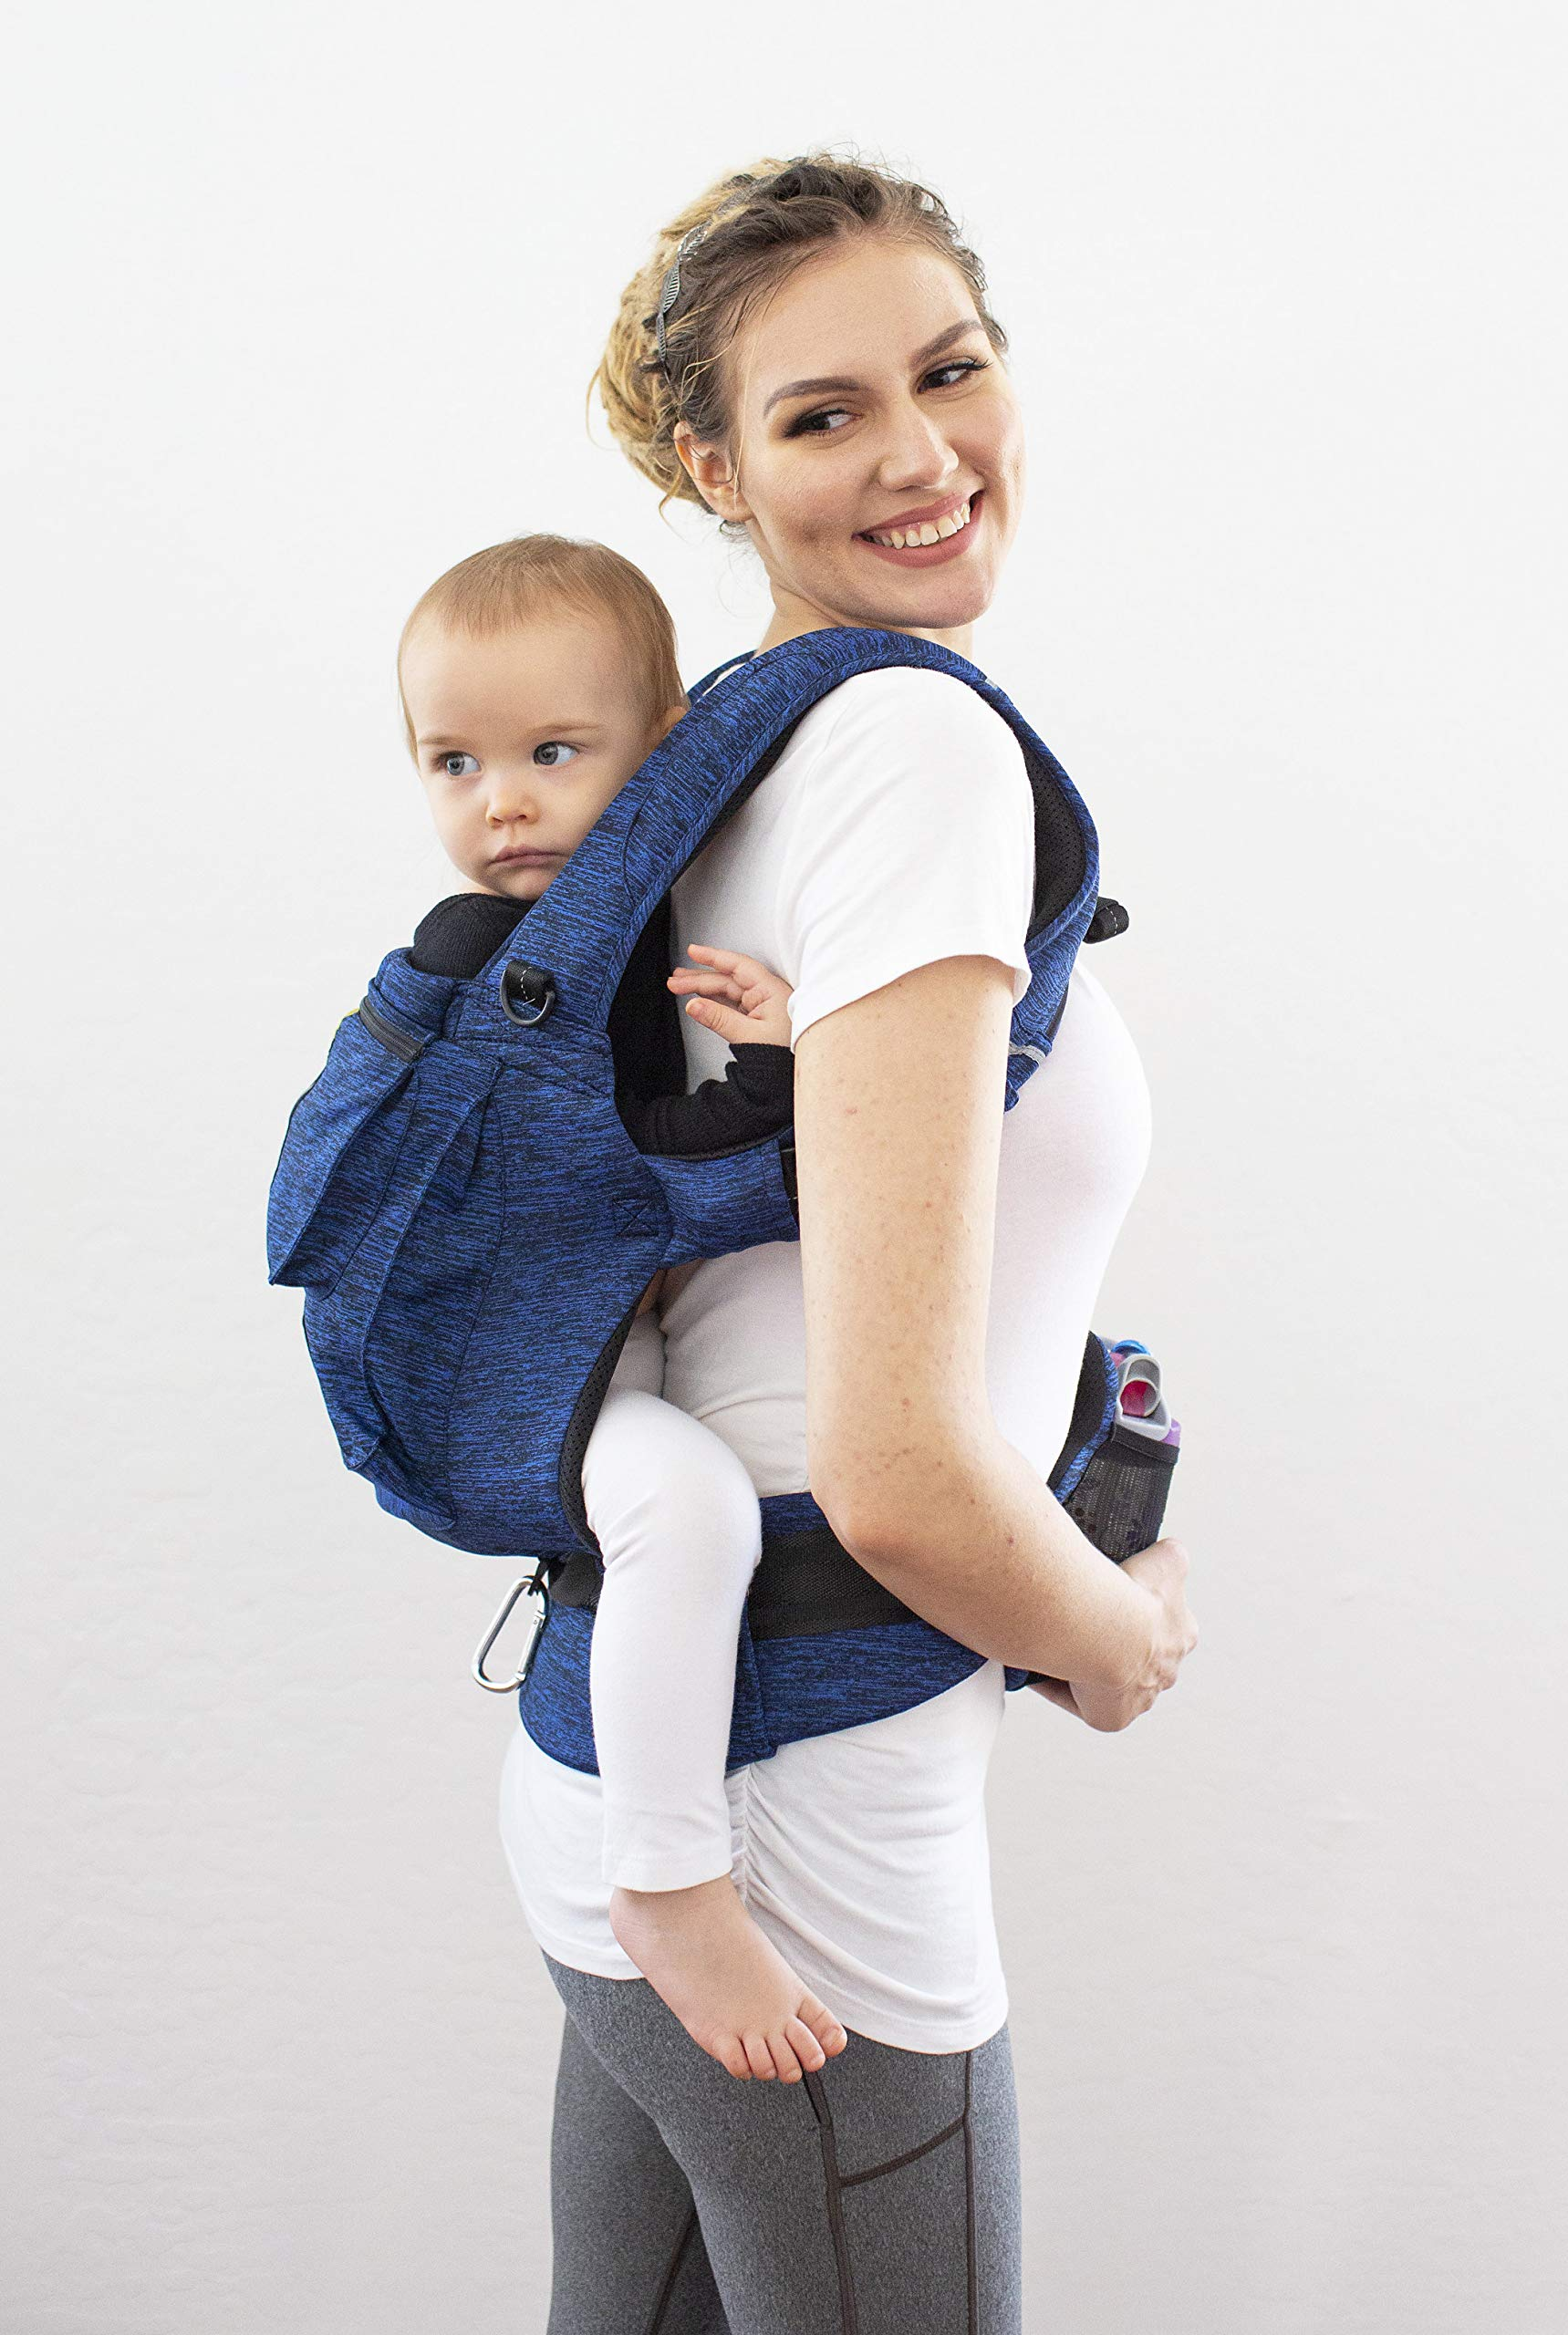 LÍLLÉbaby Complete Pursuit Pro 6-in-1 Baby Carrier Heathered, Sapphire Lillebaby Designed specifically for parents on the go, our pusuit series combines the comfort and functionality of our 6 in 1 design with adventure-ready features to help you show your little one the world Suitable from birth to 4 years, the active pro has a perfect combination of responsive fabric, advanced ergonomic fit, and innovative safety upgrades make it the ideal tool for all-weather exploring Unique líllébaby lumbar support for the wearer, with wide padded waist belt and shoulder straps 3